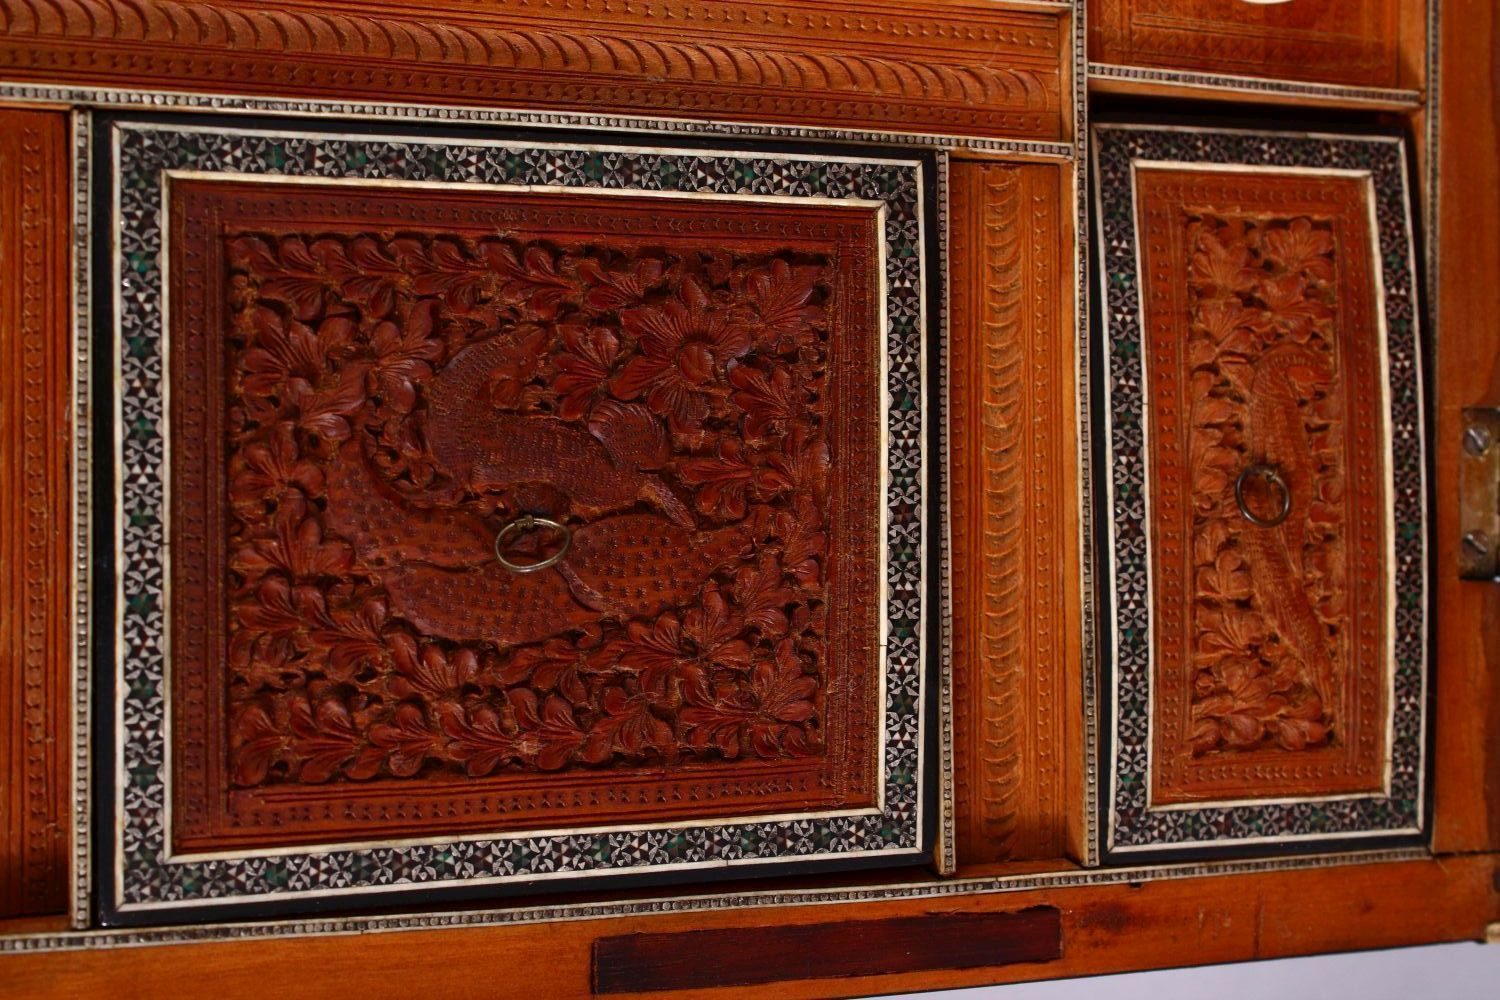 A 19TH CENTURY ANGLO INDIAN INLAID LIDDED SEWING BOX, with carved wood depicting figures and animals - Image 7 of 10